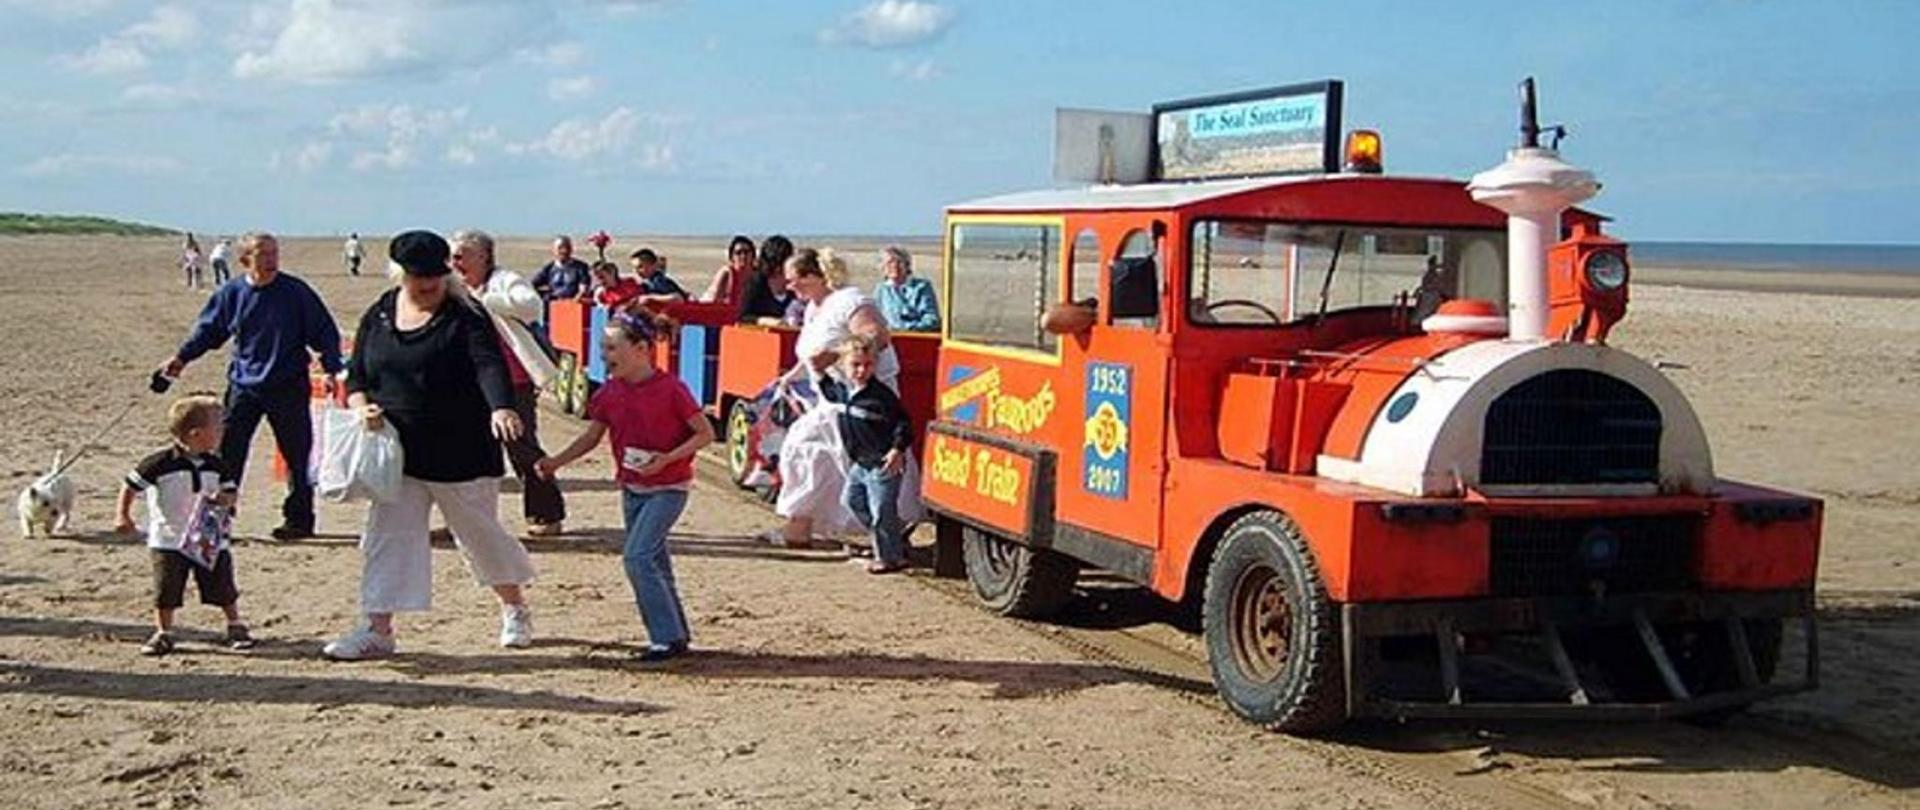 Sand Train in Mablethorpe